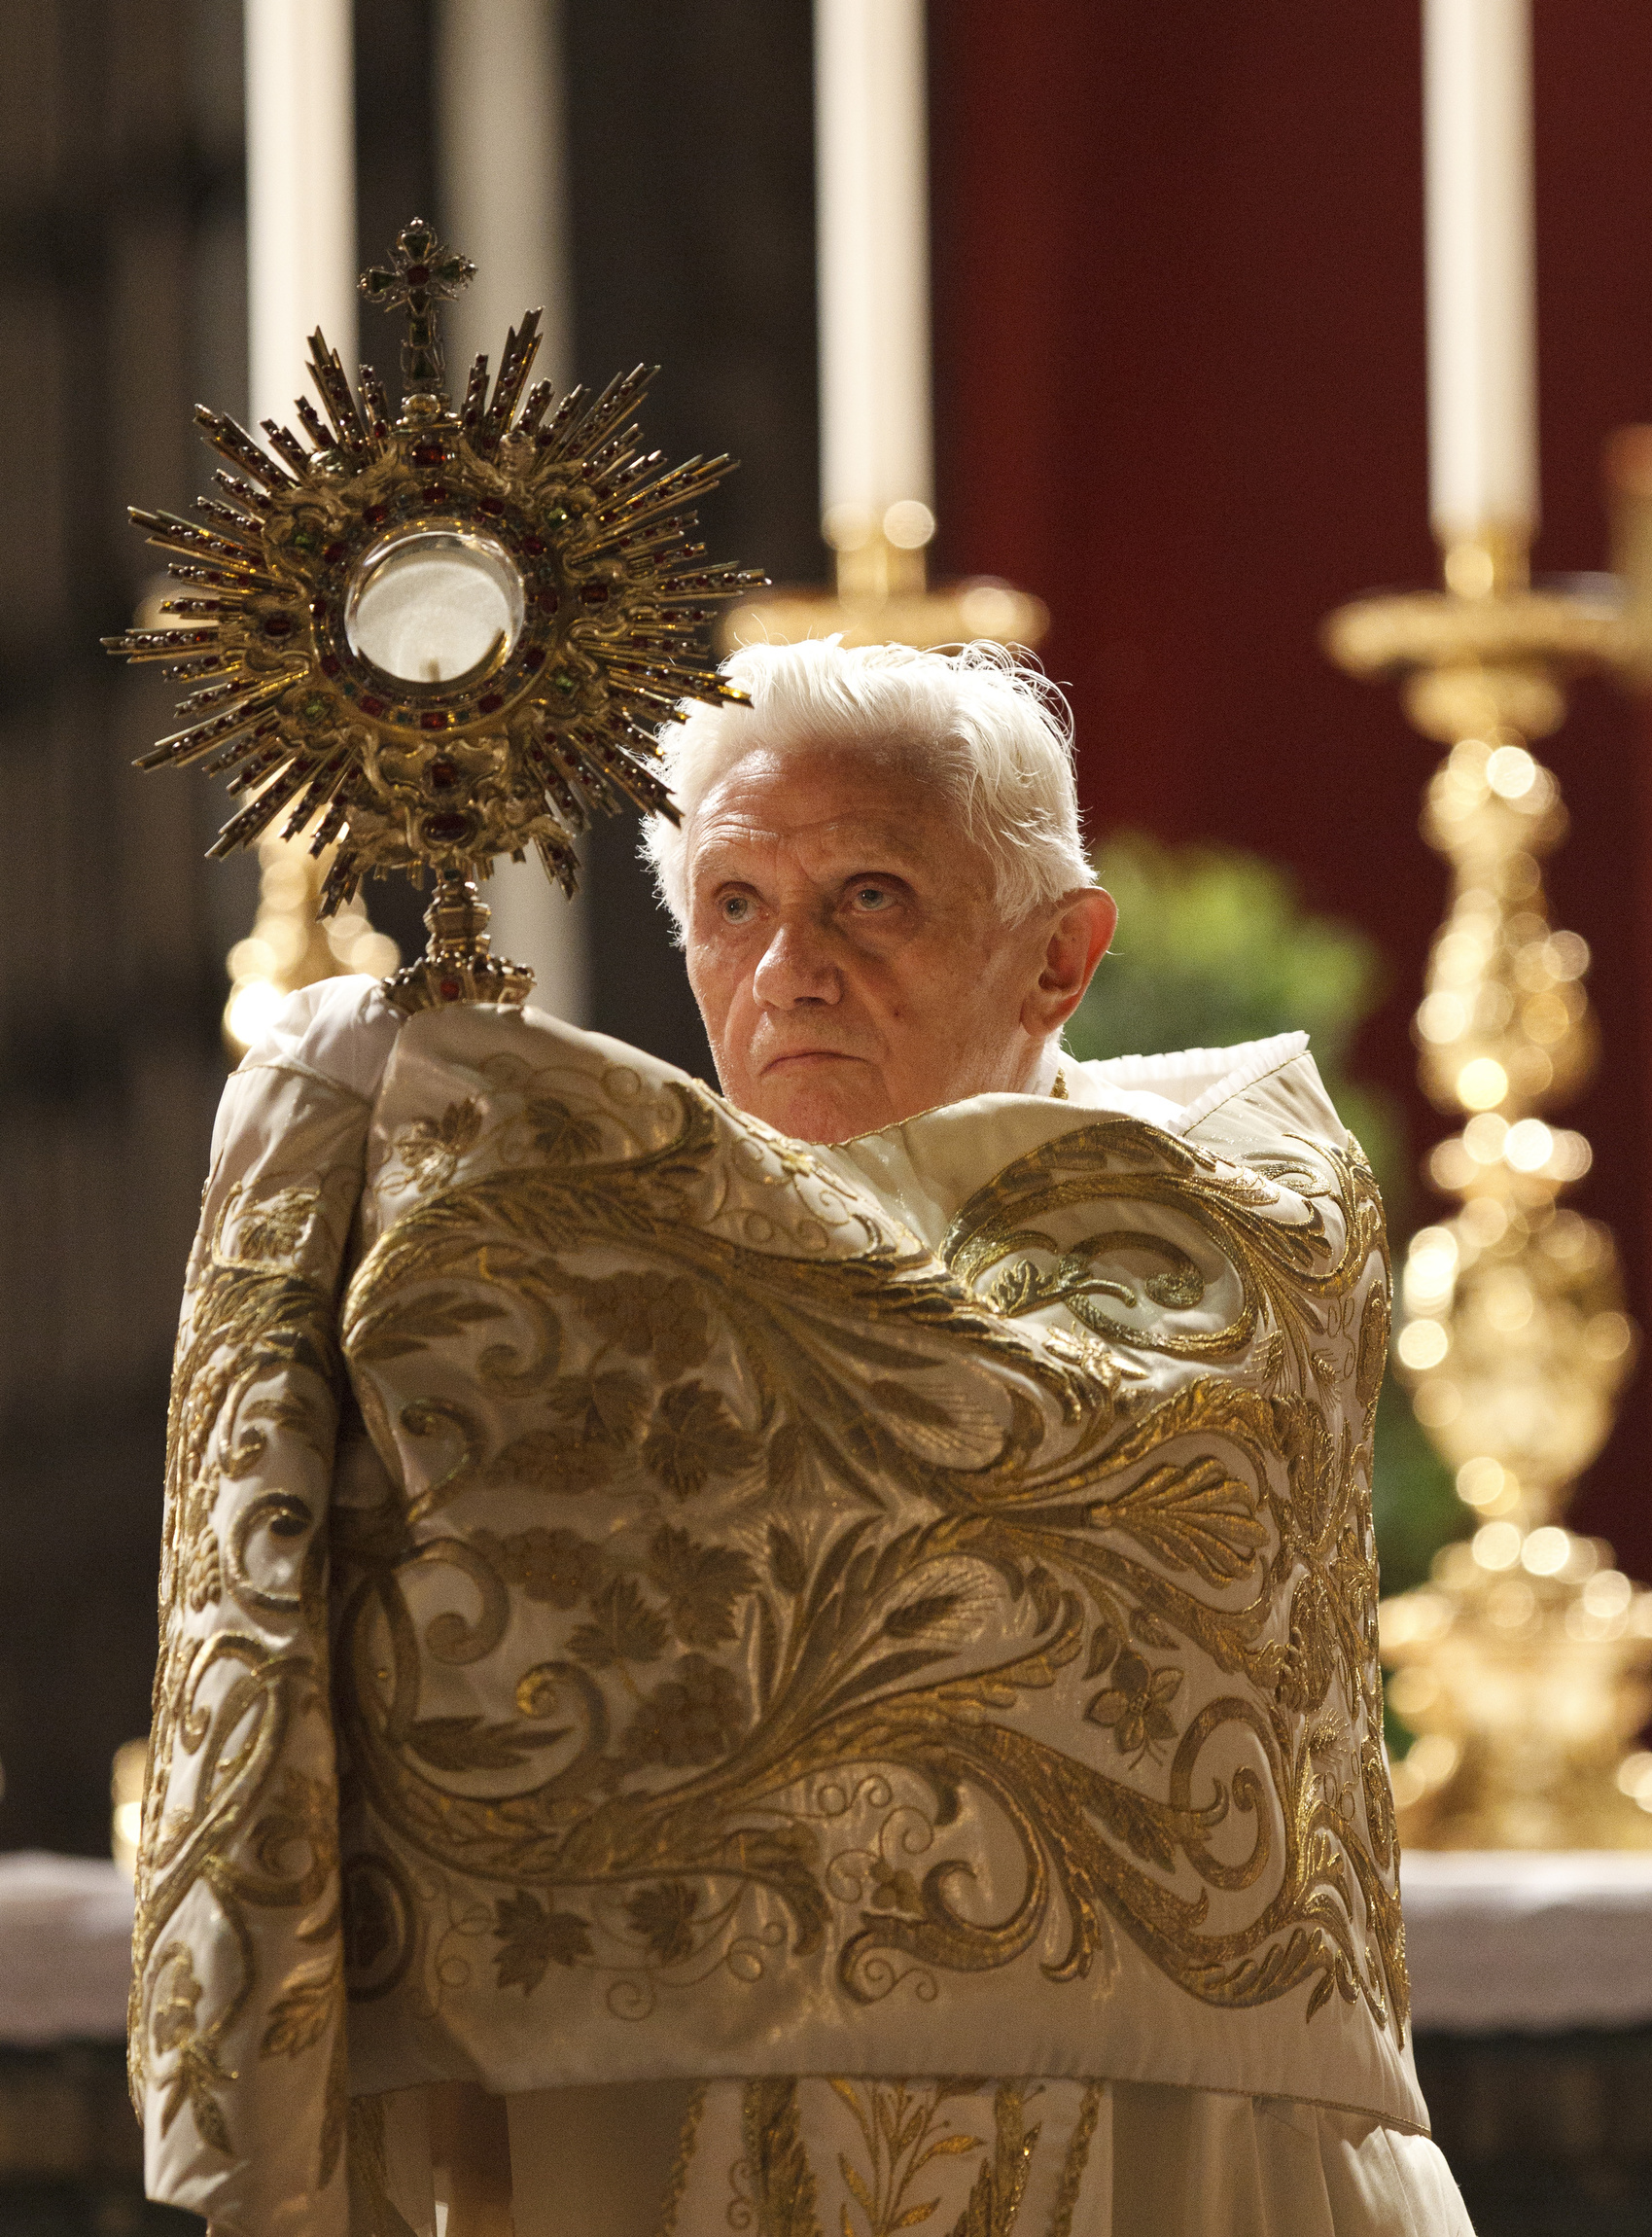 POPE LEADS BENEDICTION AFTER CORPUS CHRISTI PROCESSION IN ROME